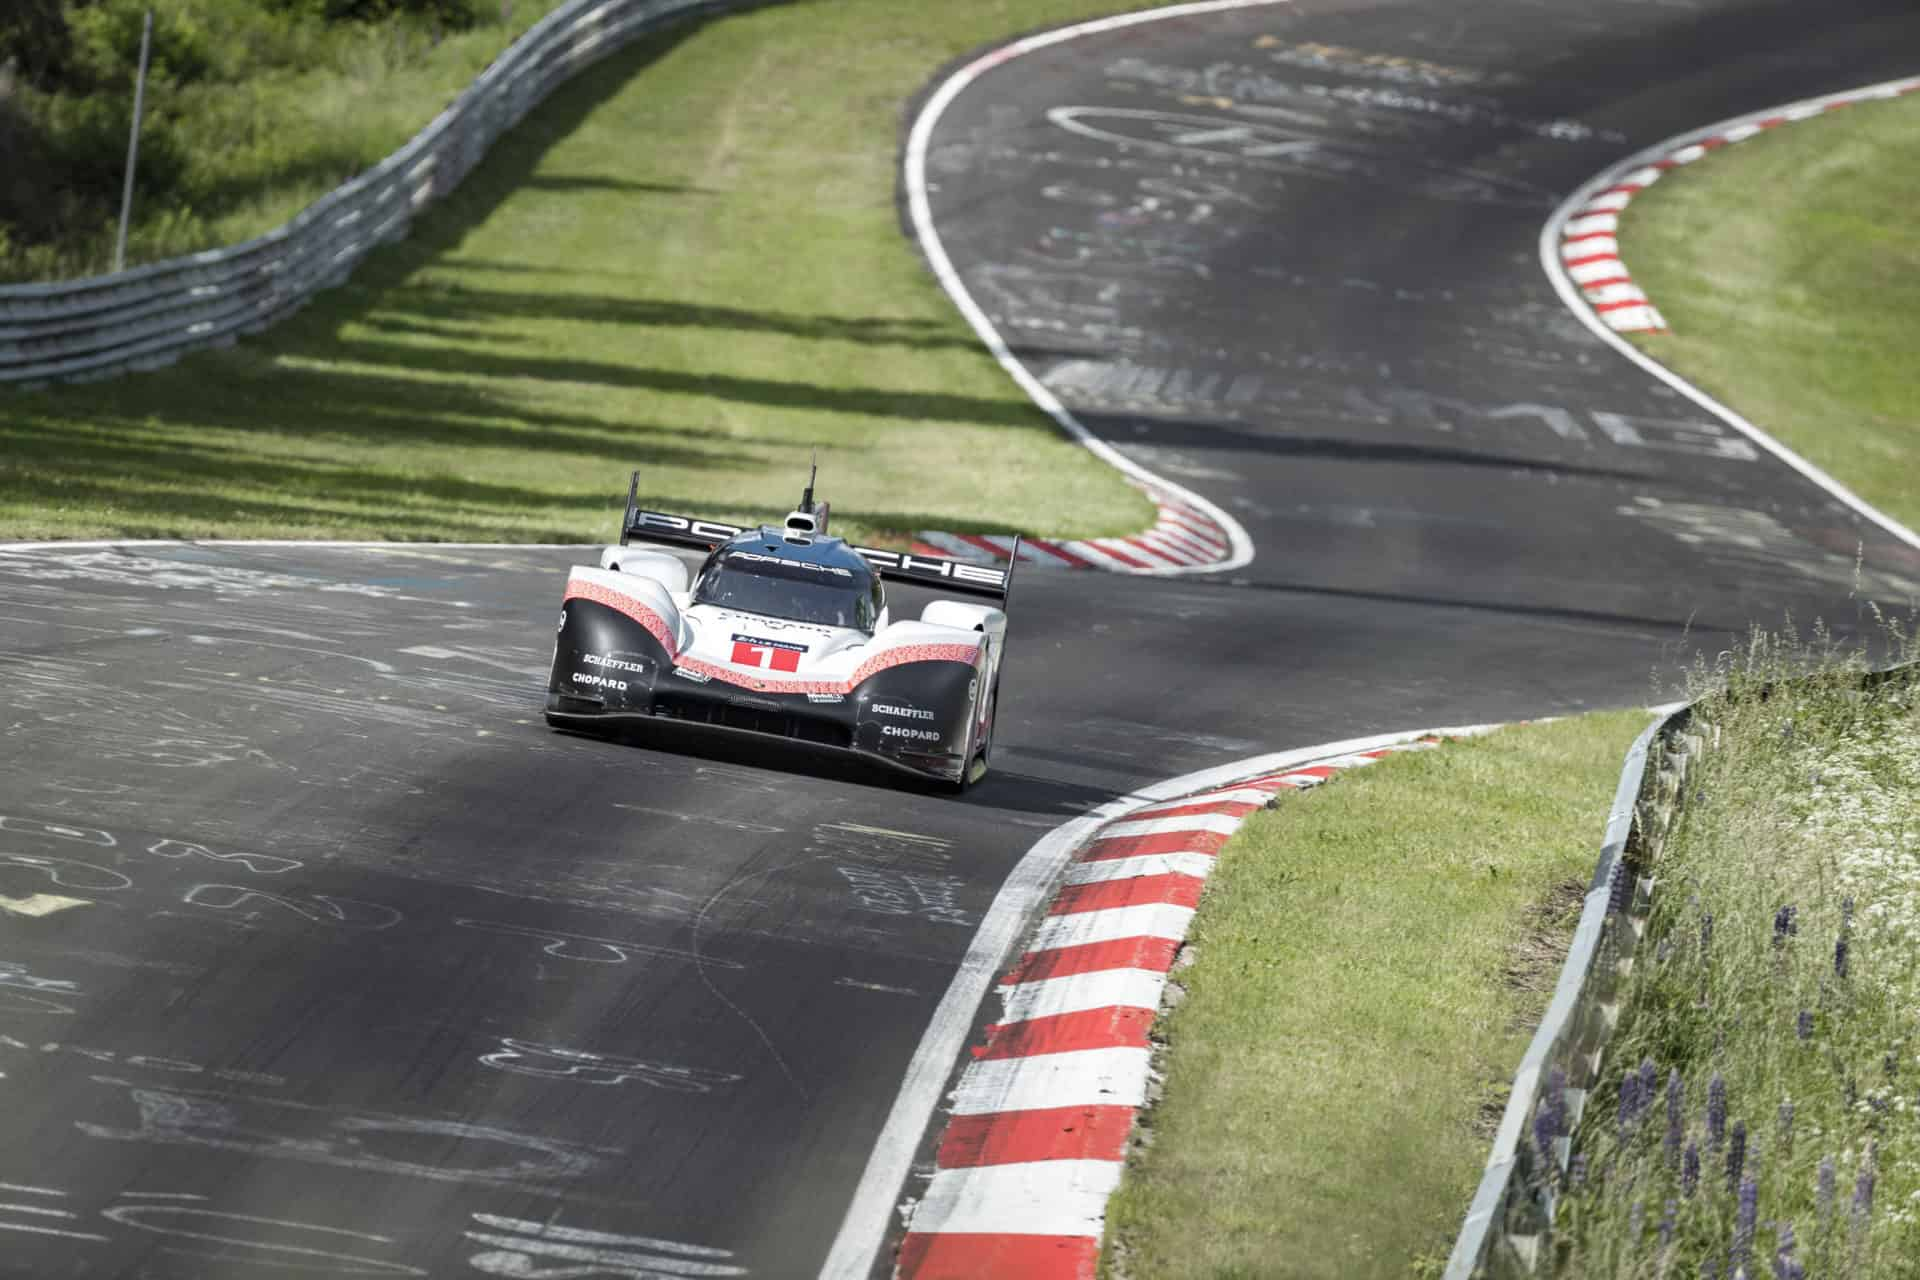 Best time on the Nürburgring Nordschleife Timo Bernhard beats 6 minute mark 6